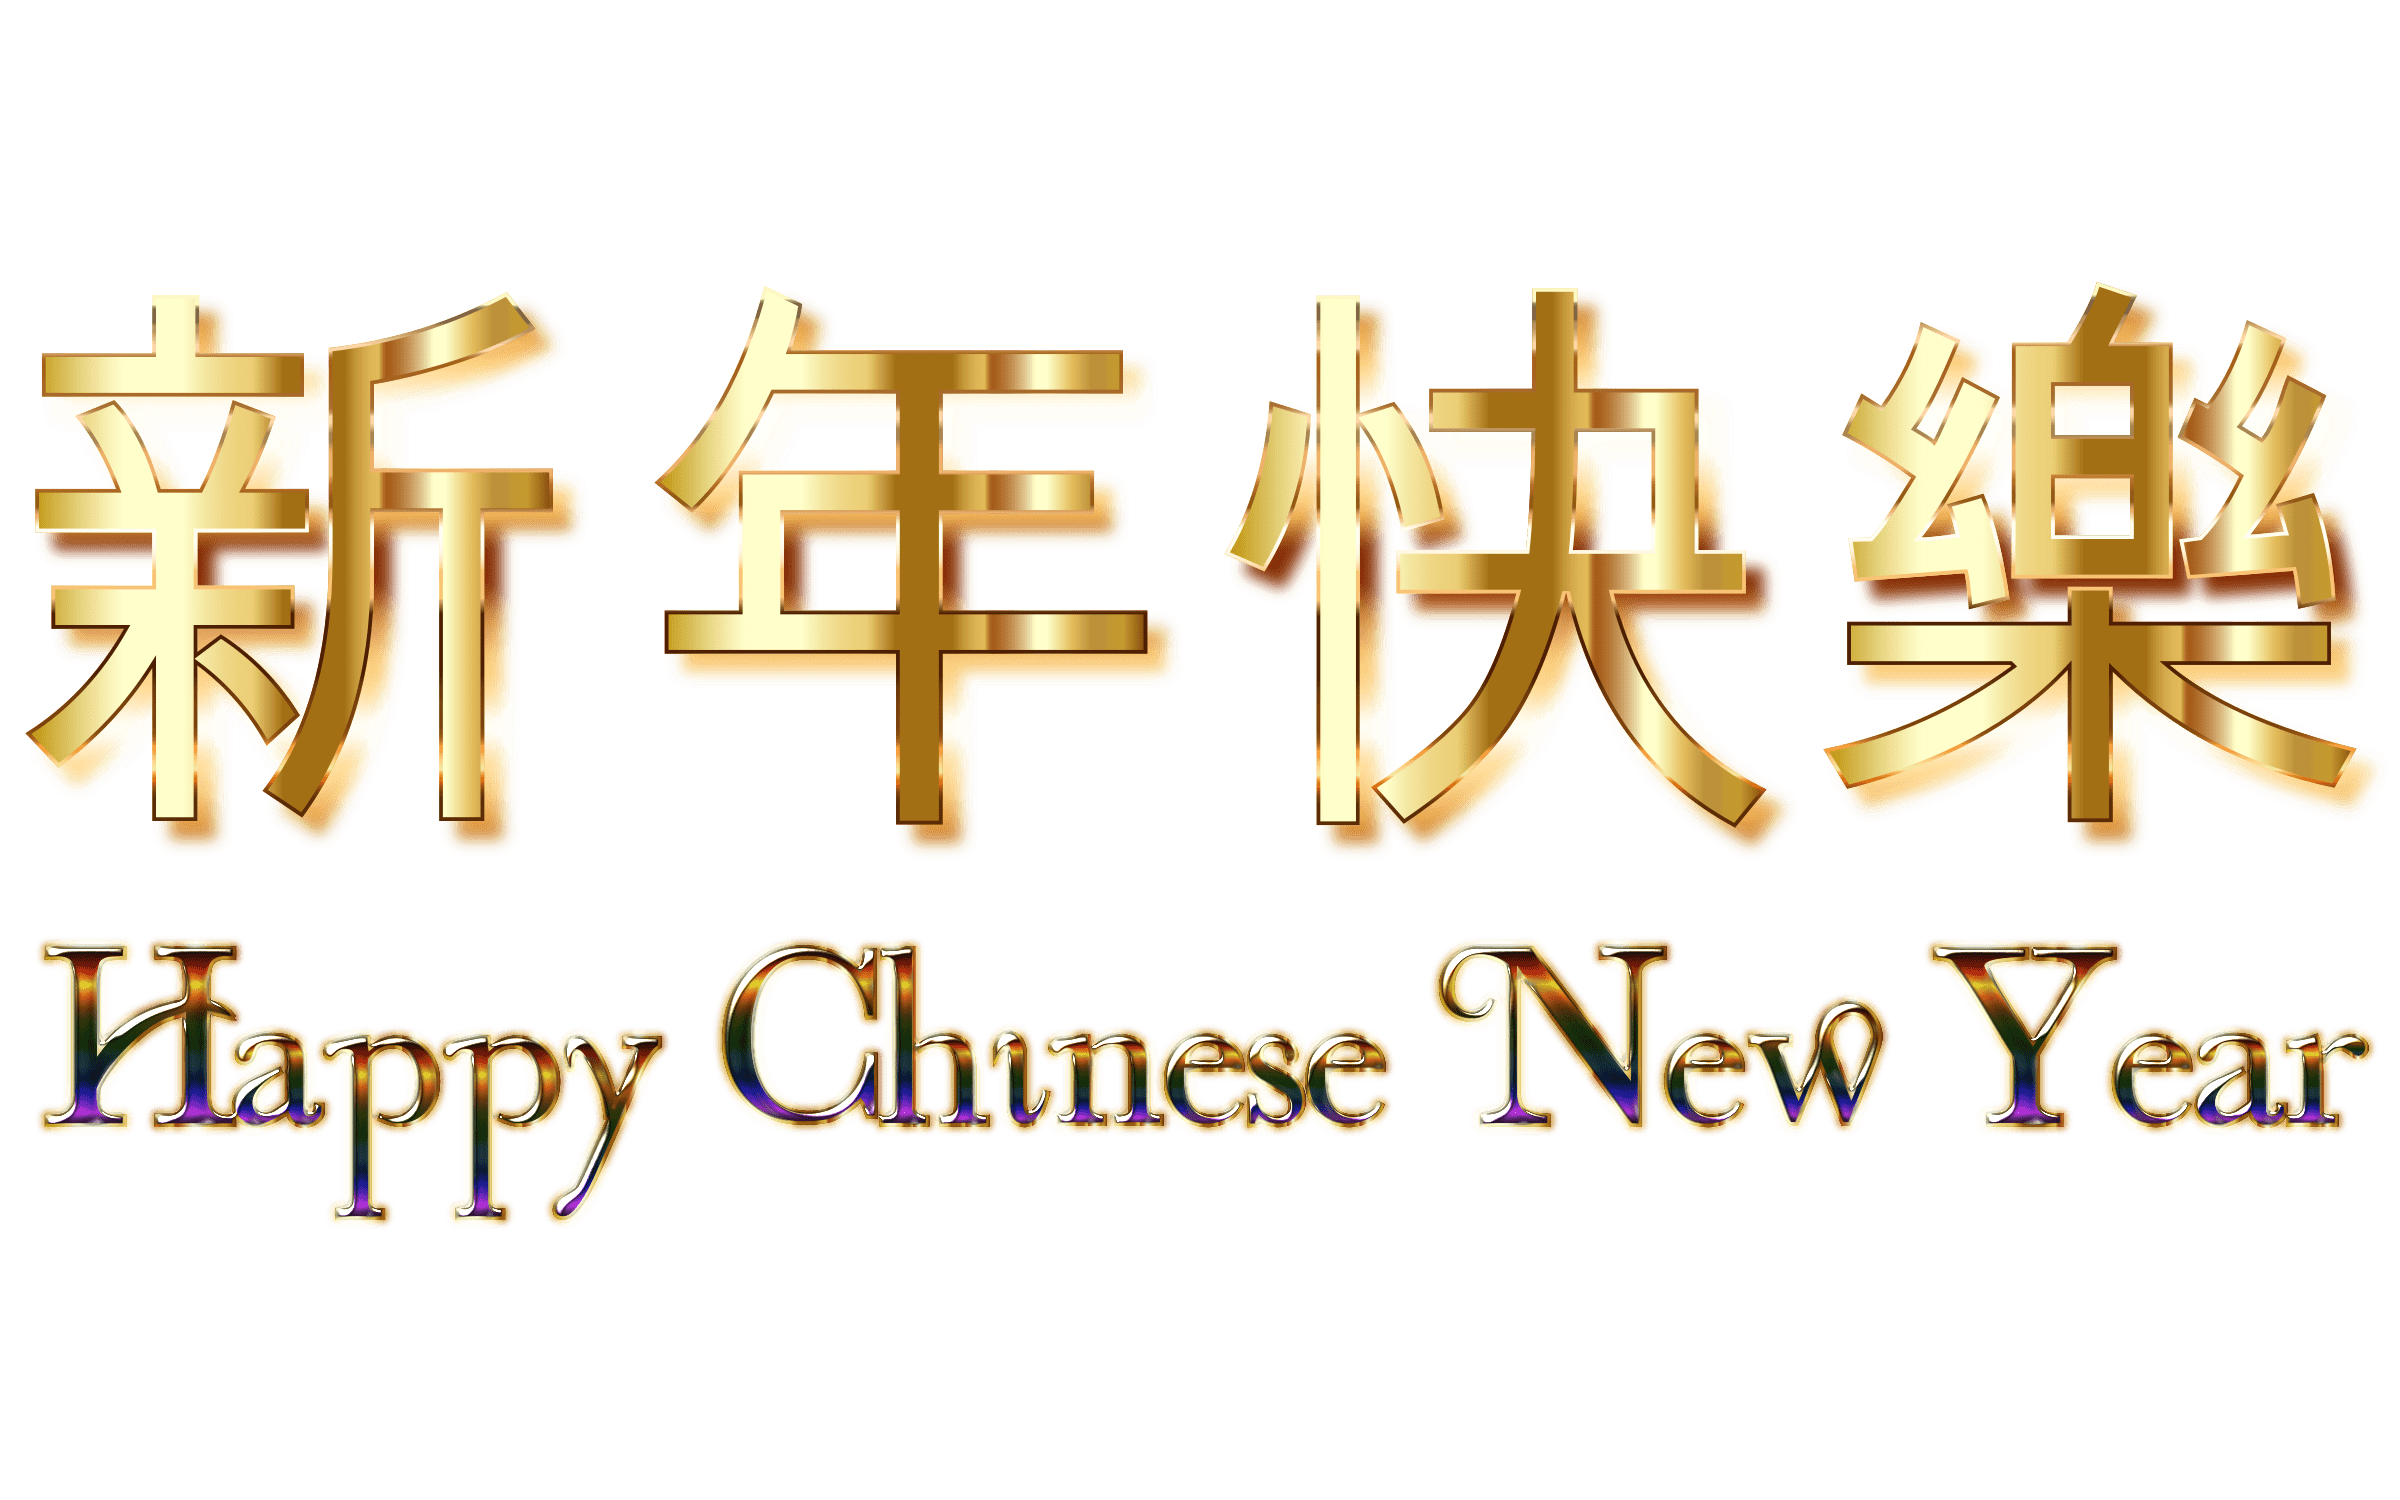 New year transparent png. Firework clipart firework chinese